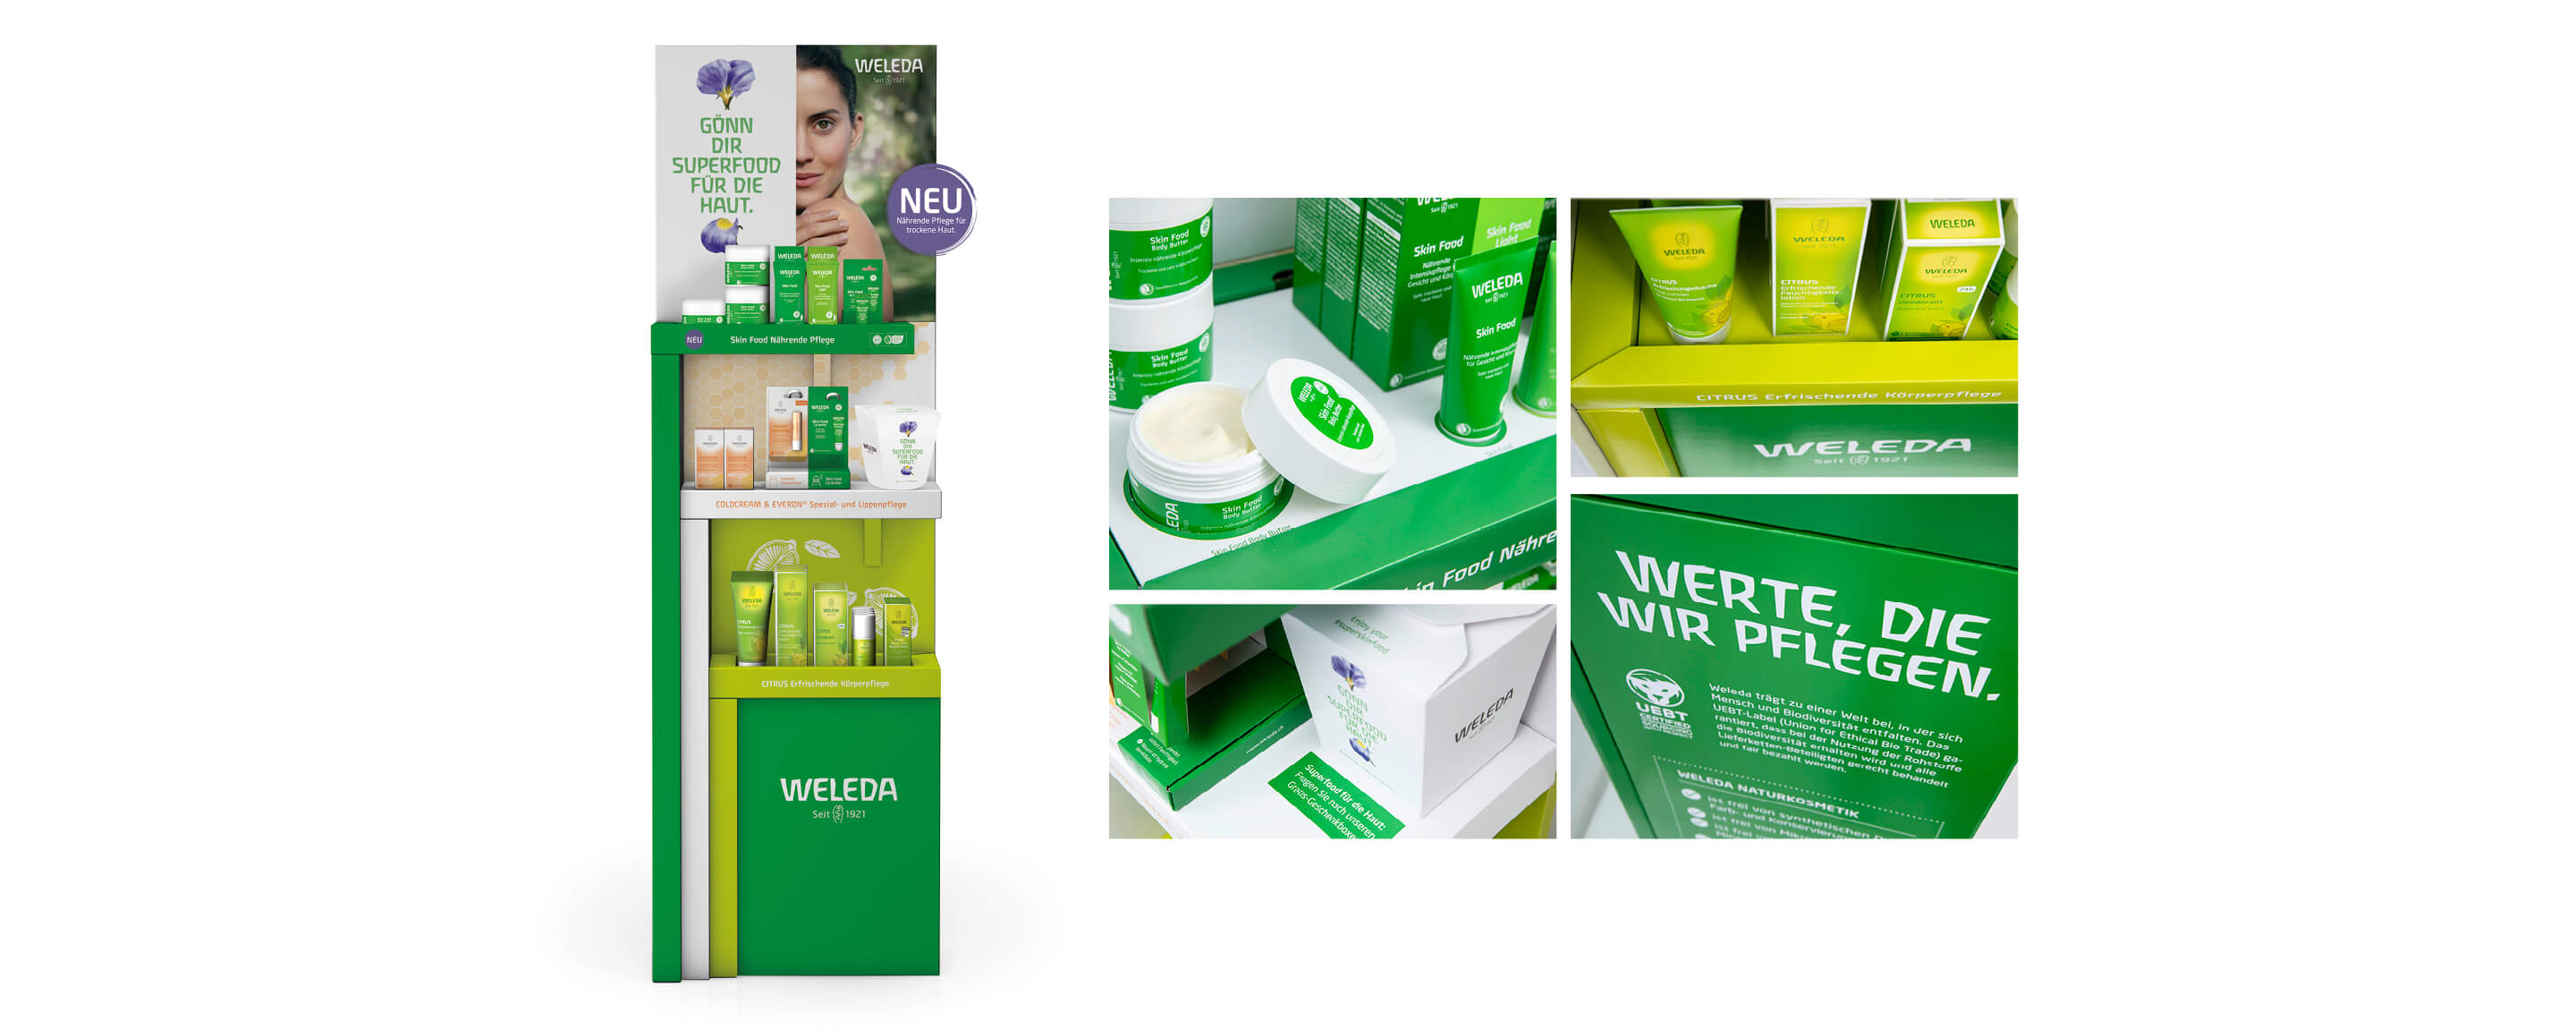 Weleda_Skin_Food_Display